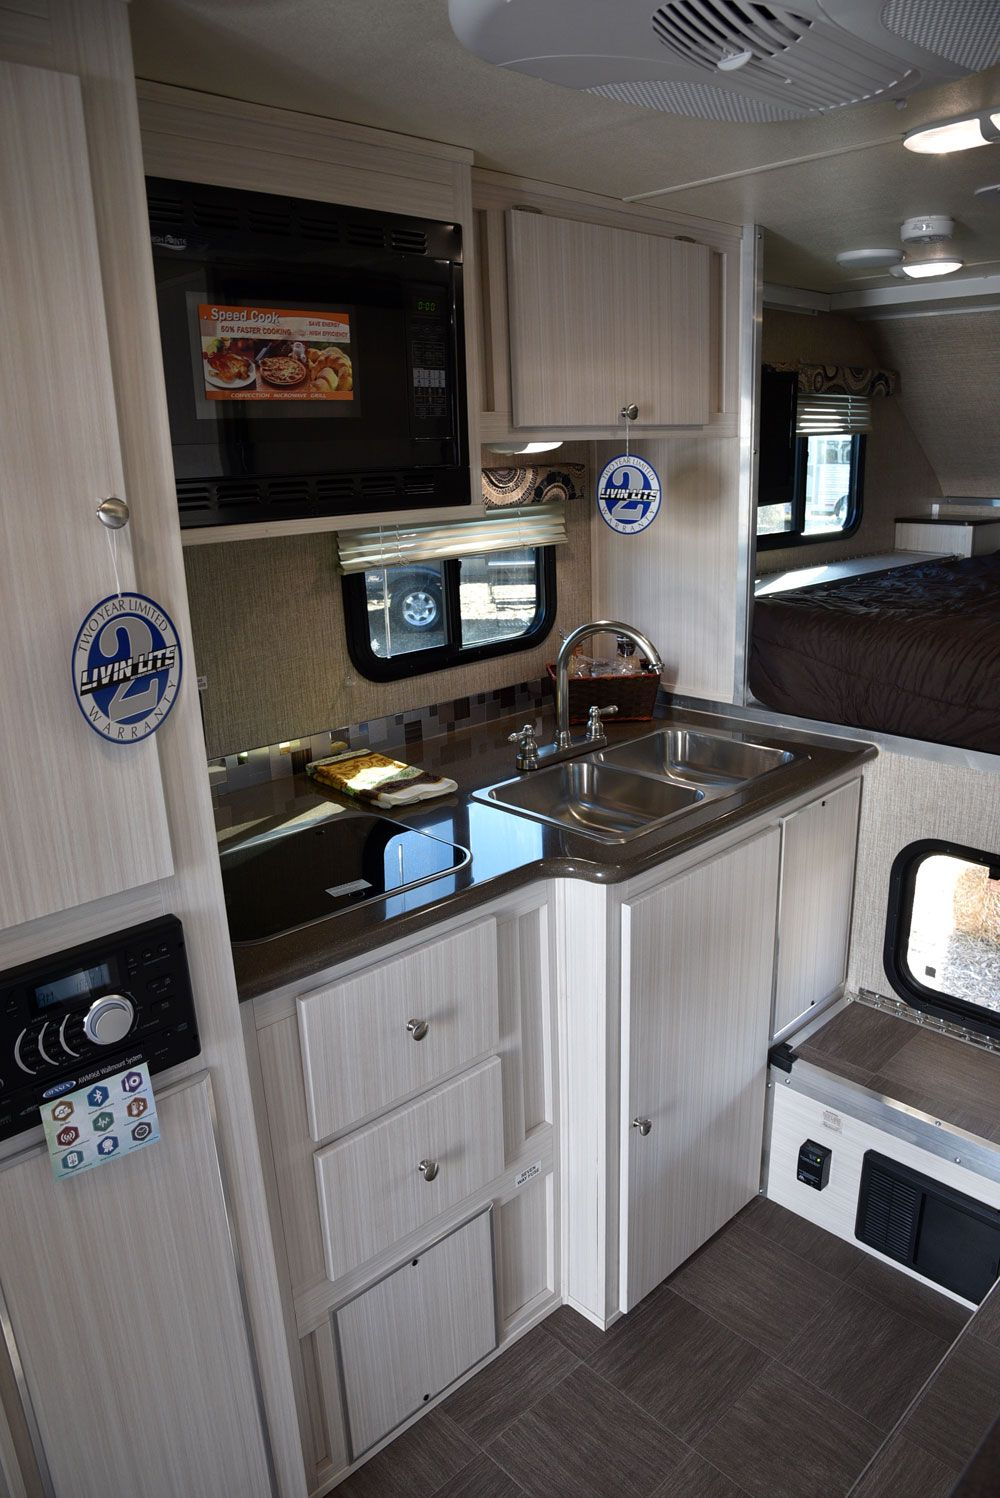 2016 Camplite Announcements New Decors For 2016 Rv